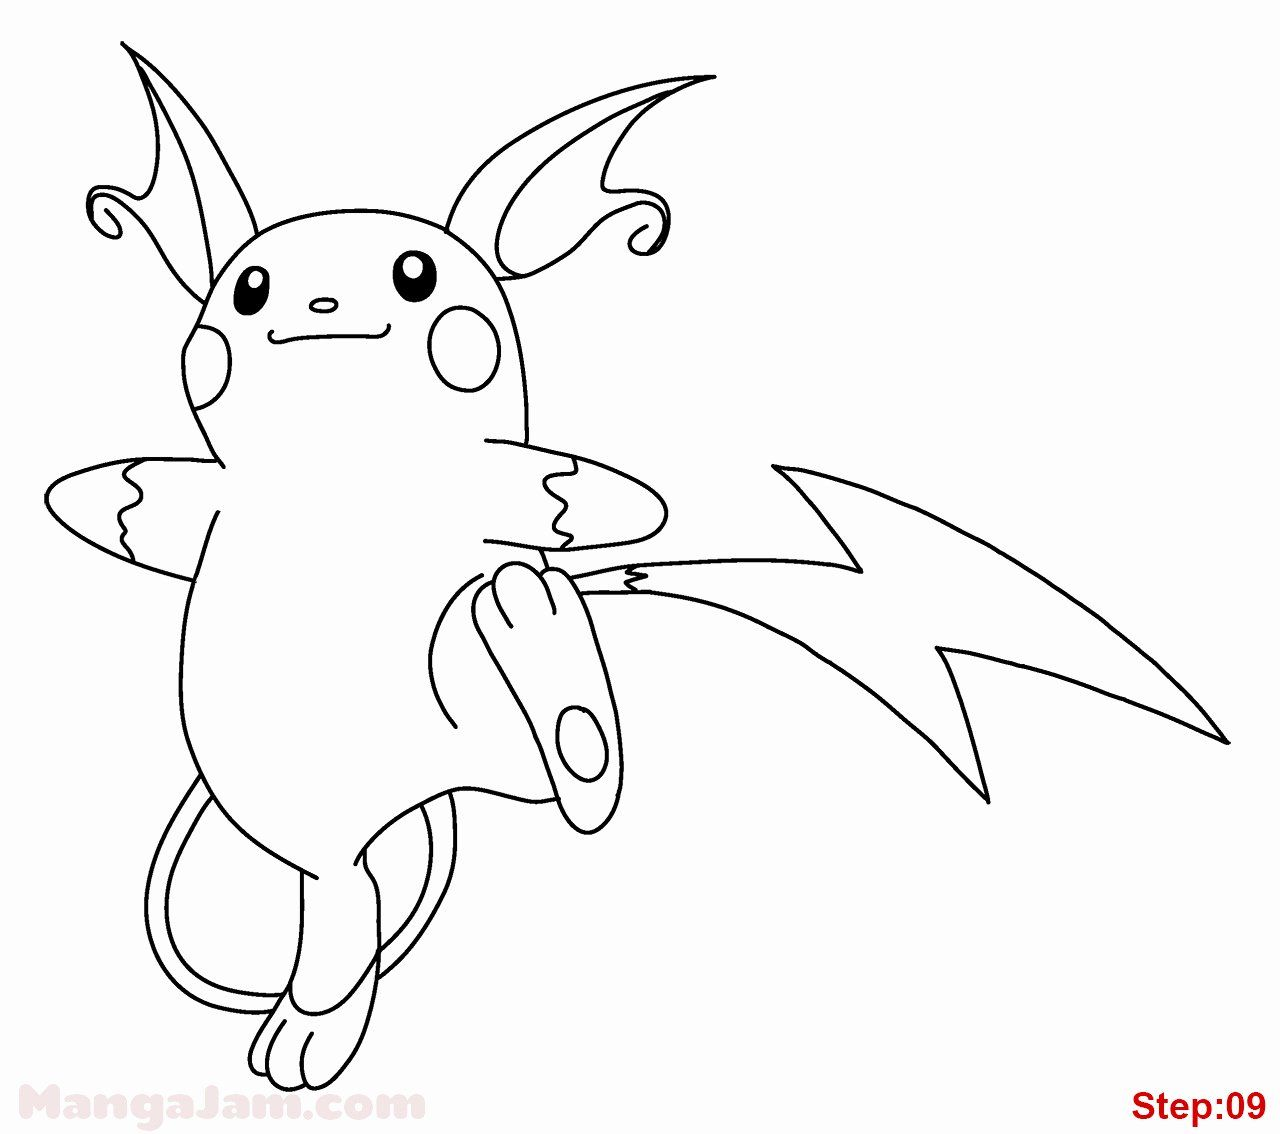 Alolan Raichu Coloring Page Unique Pokemon Trainer Raichu Coloring Pages Pokemon Coloring Shark Coloring Pages Coloring Pages